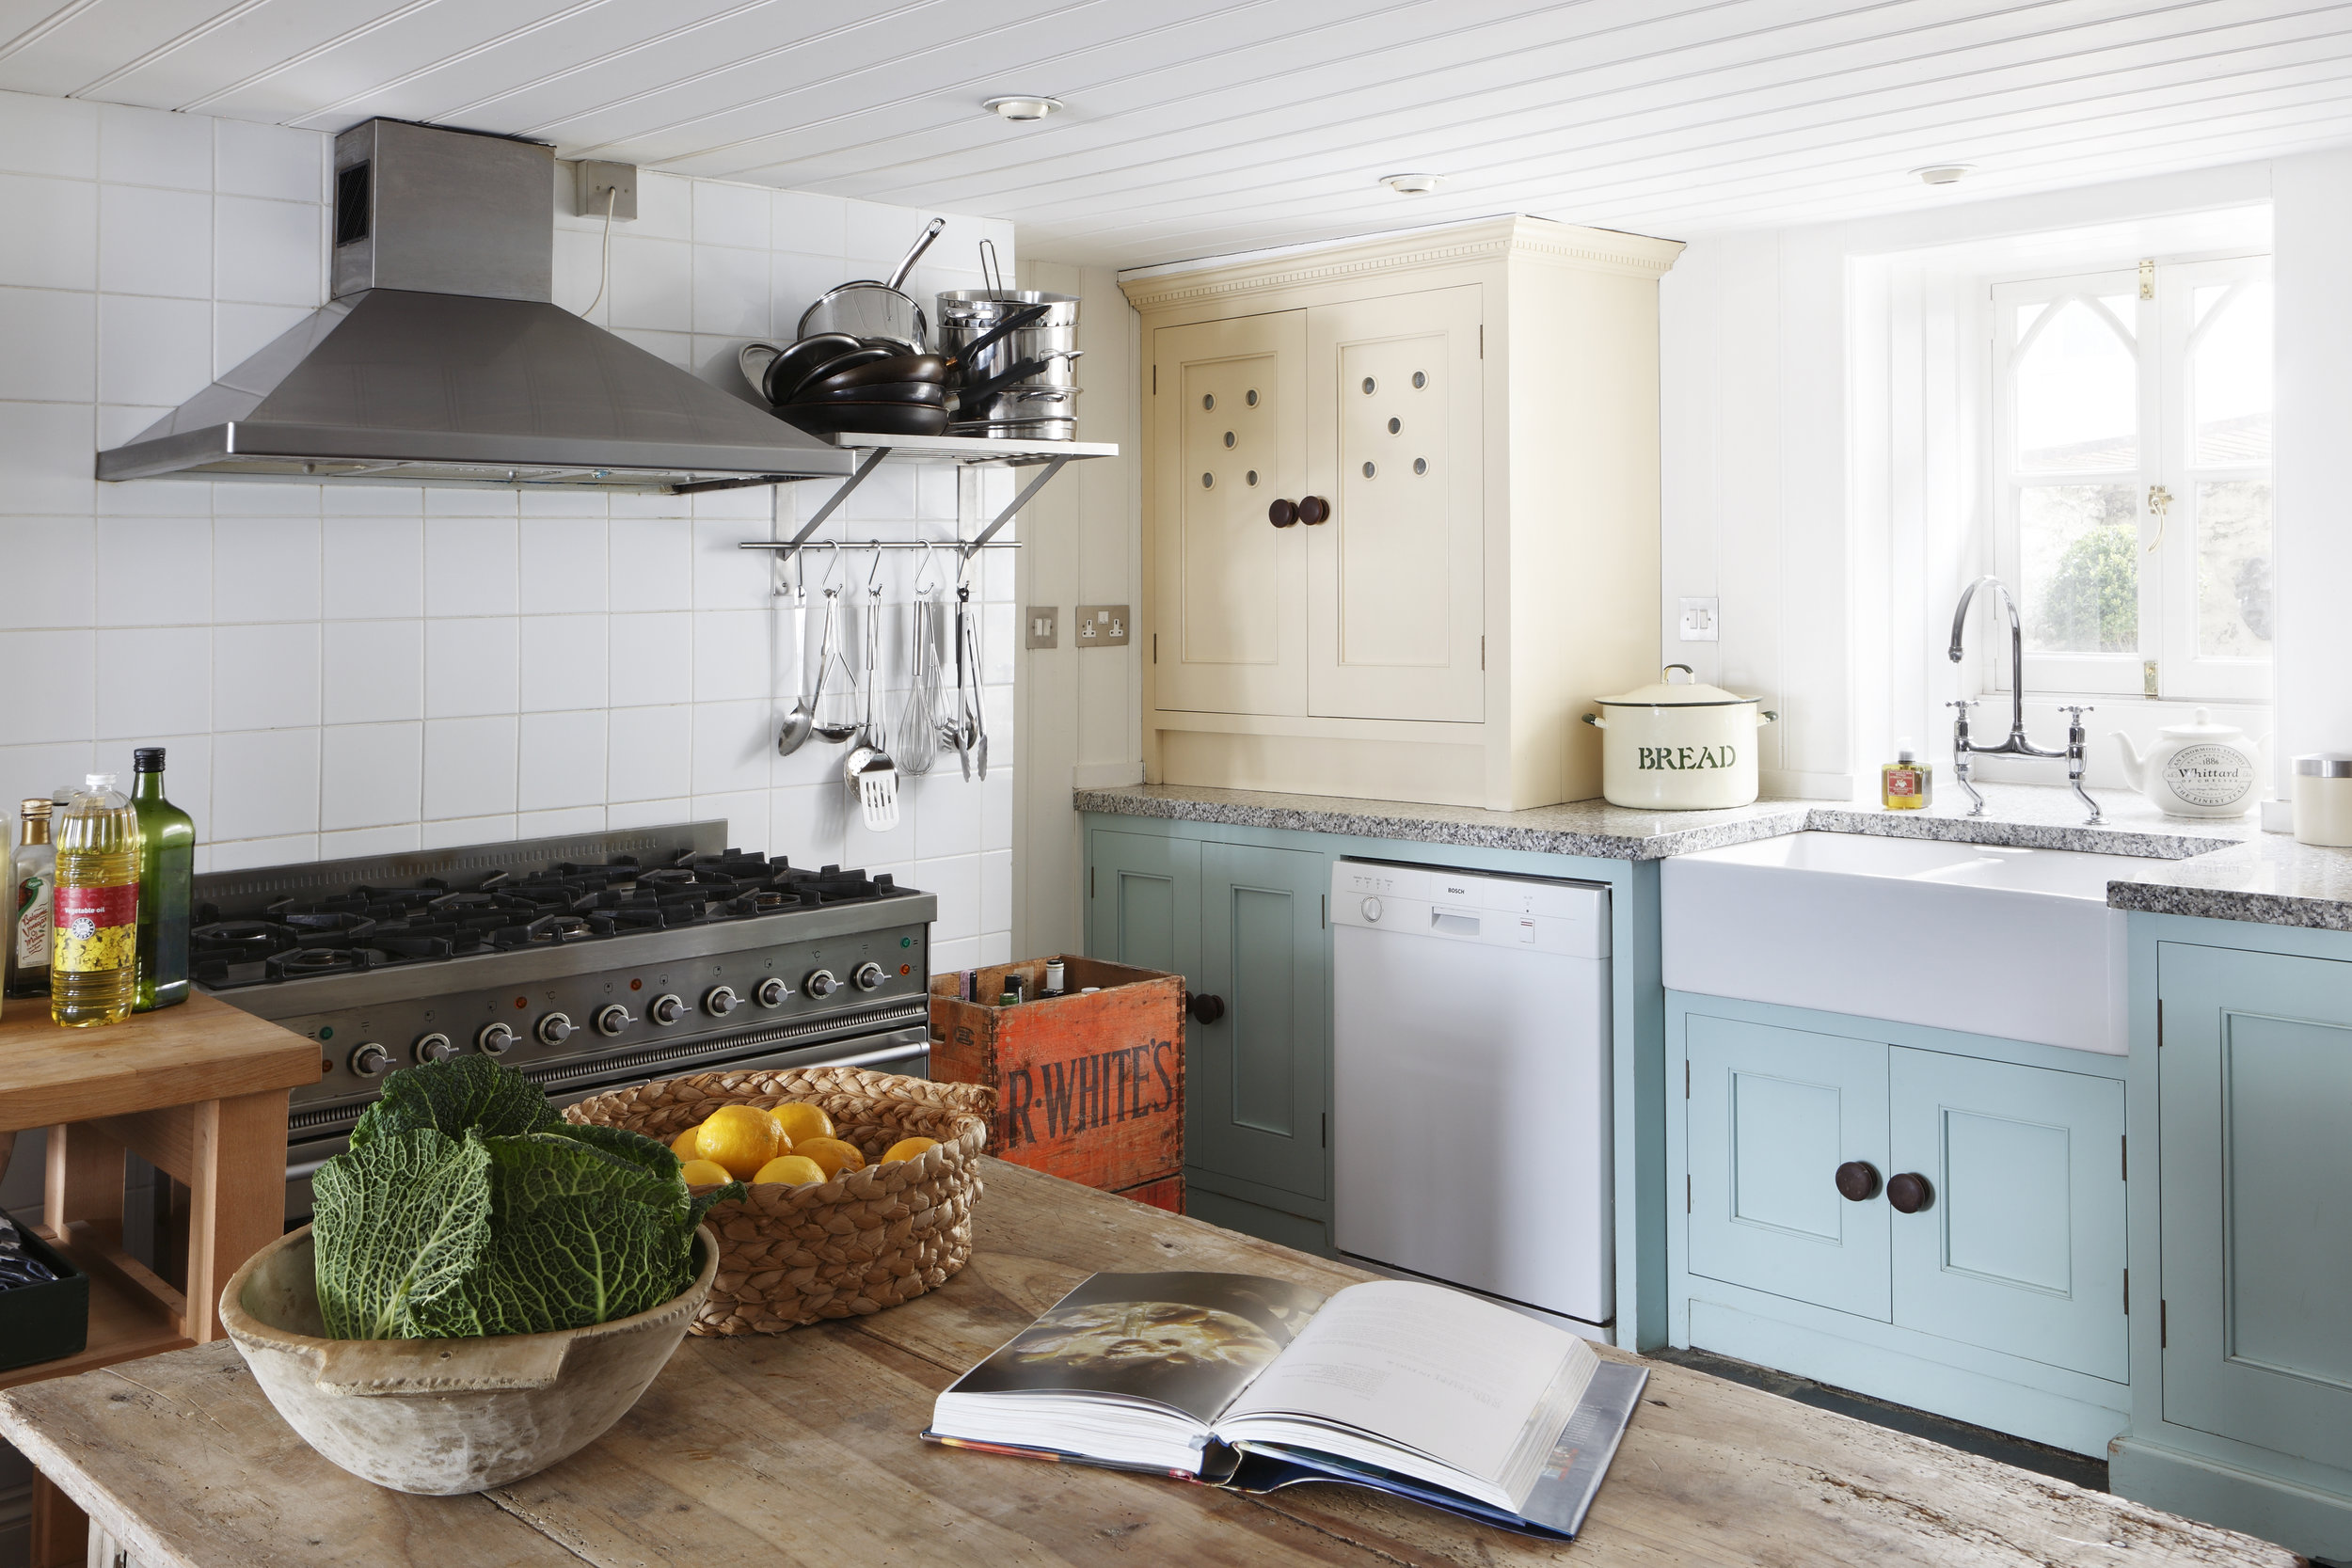 Kitchen Interior design Salcombe, Devon by Ham Interiors.jpg